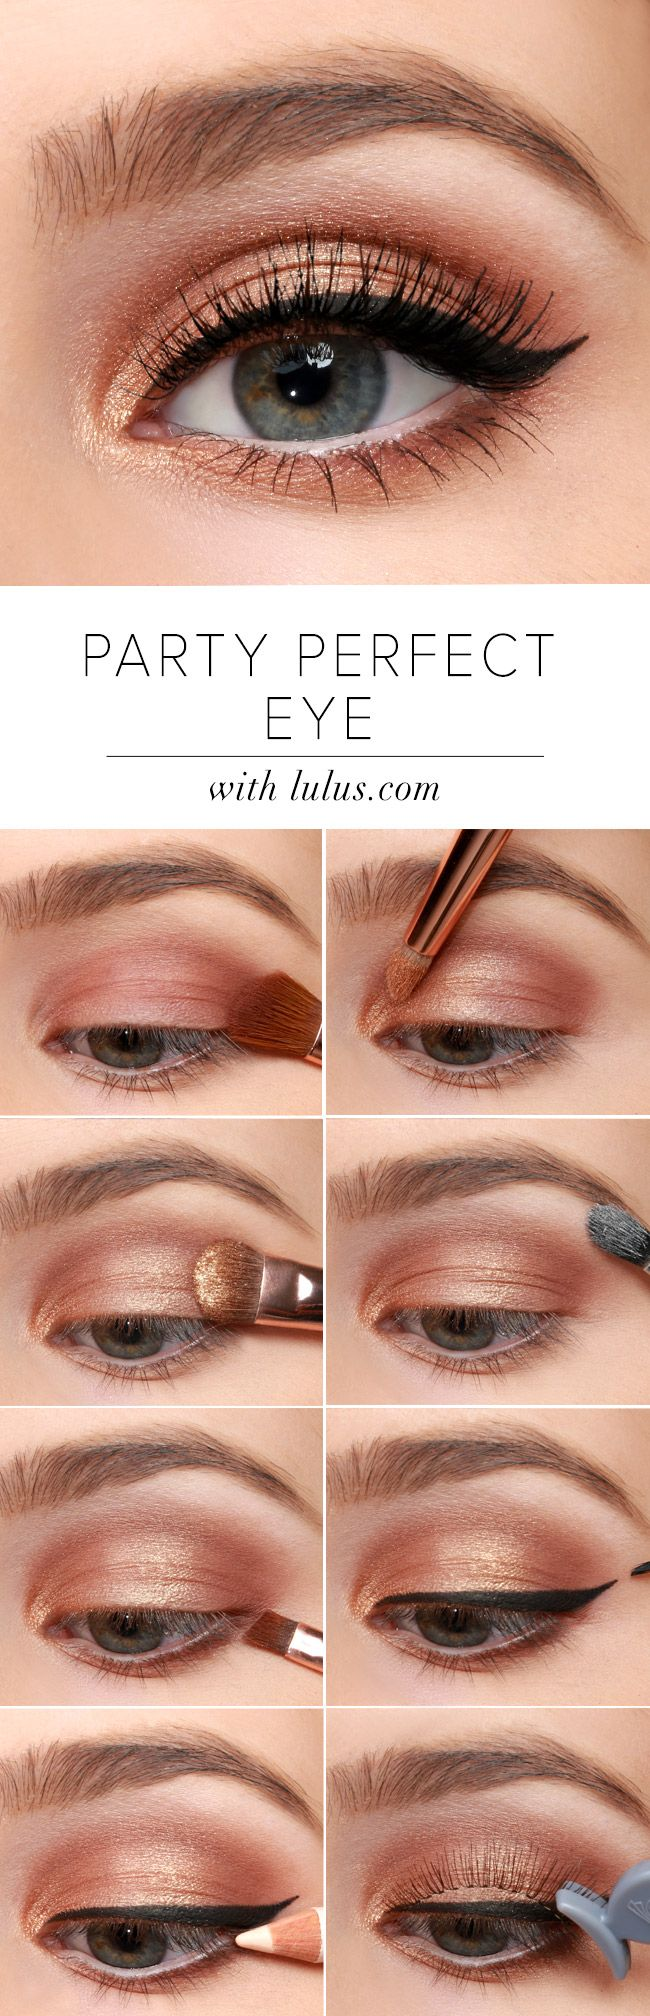 LuLus HowTo Party Perfect Eye Makeup Tutorial Luluscom Fashion